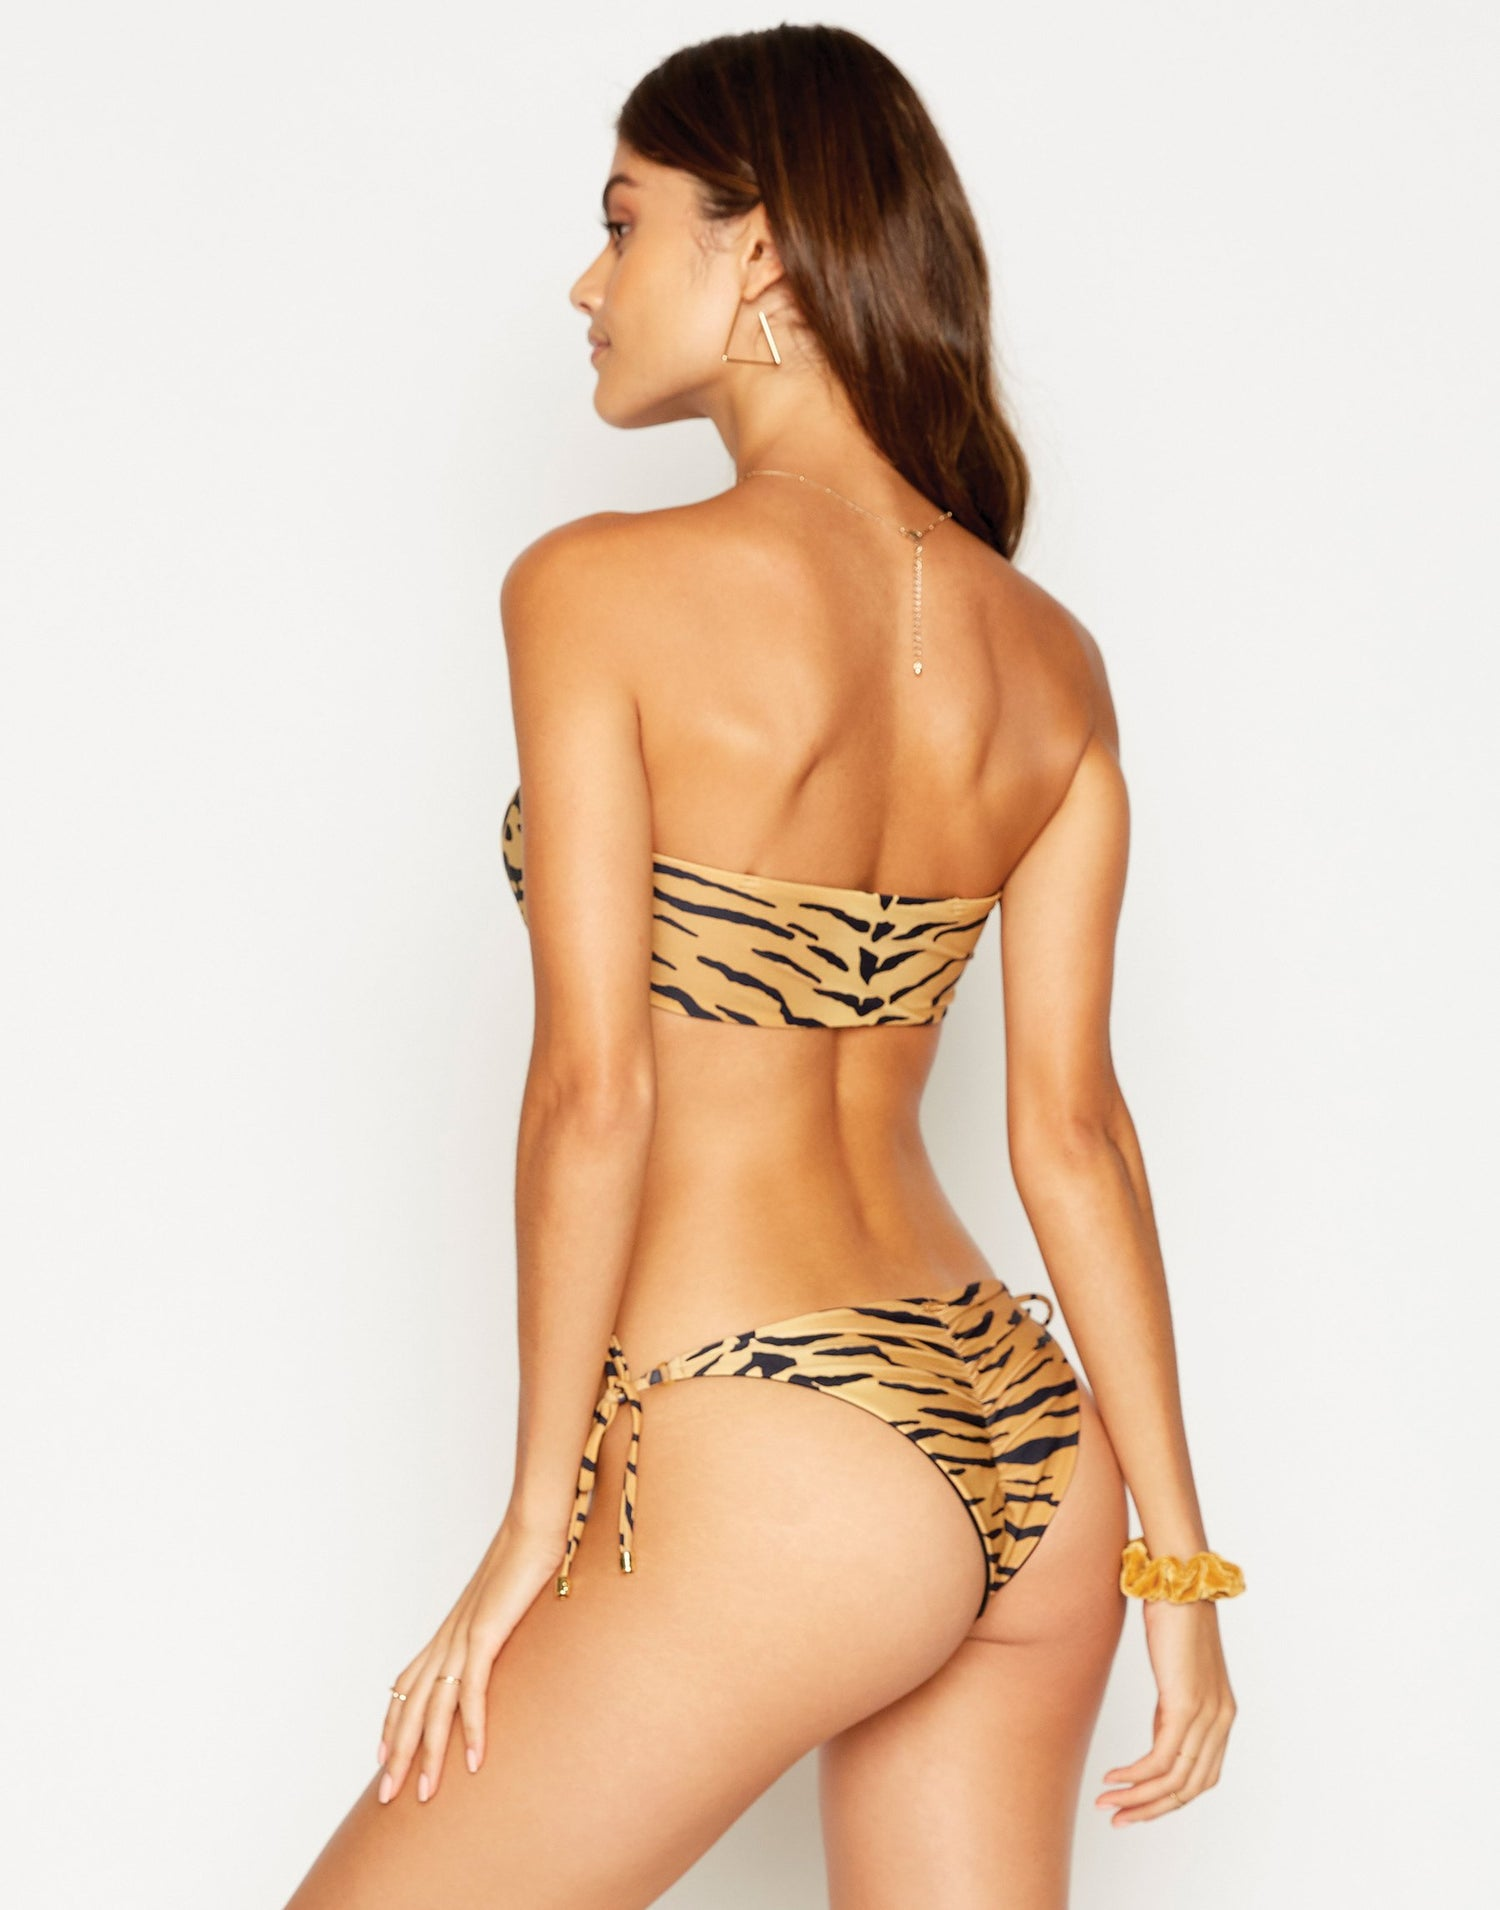 London Bralette Bikini Top in Tiger without Straps - back view